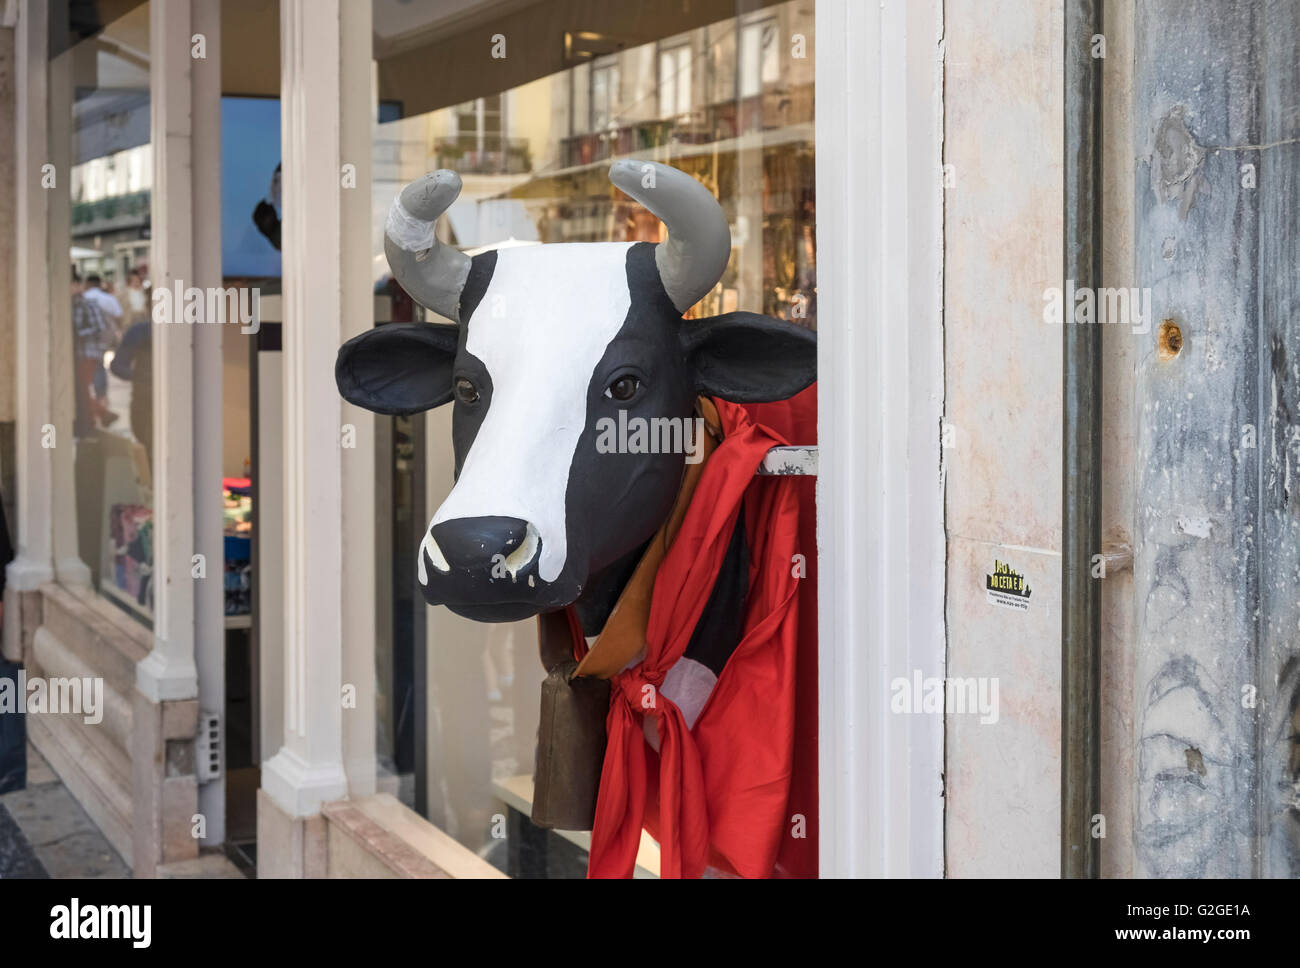 Imitation bull head protruding from a store display window, Lisbon, Portugal - Stock Image